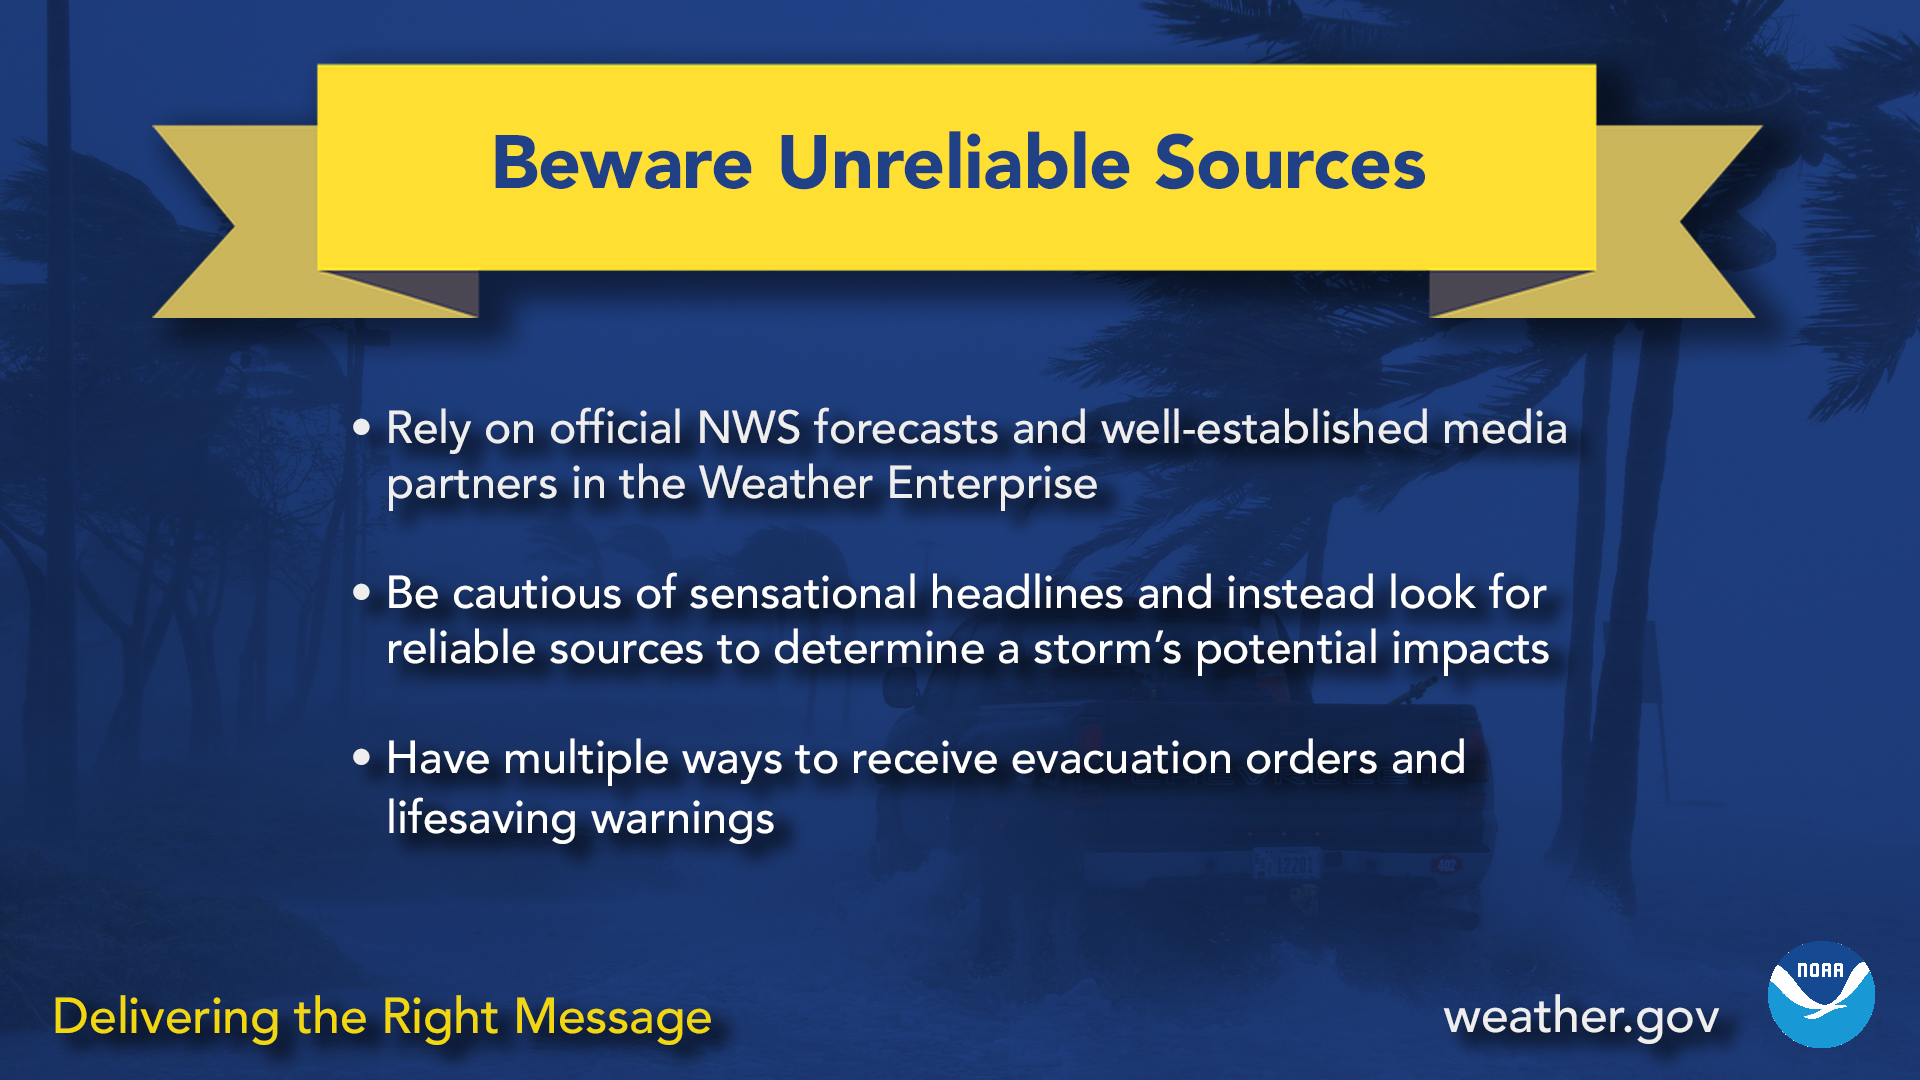 Beware unreliable sources. Rely on official NWS forecasts and well-established media partners in the weather enterprise. Be cautious of sensational headlines and instead look for reliable sources to determine a storm's potential impacts. Have multople ways to receive evacuation orders and lifesaving warnings.